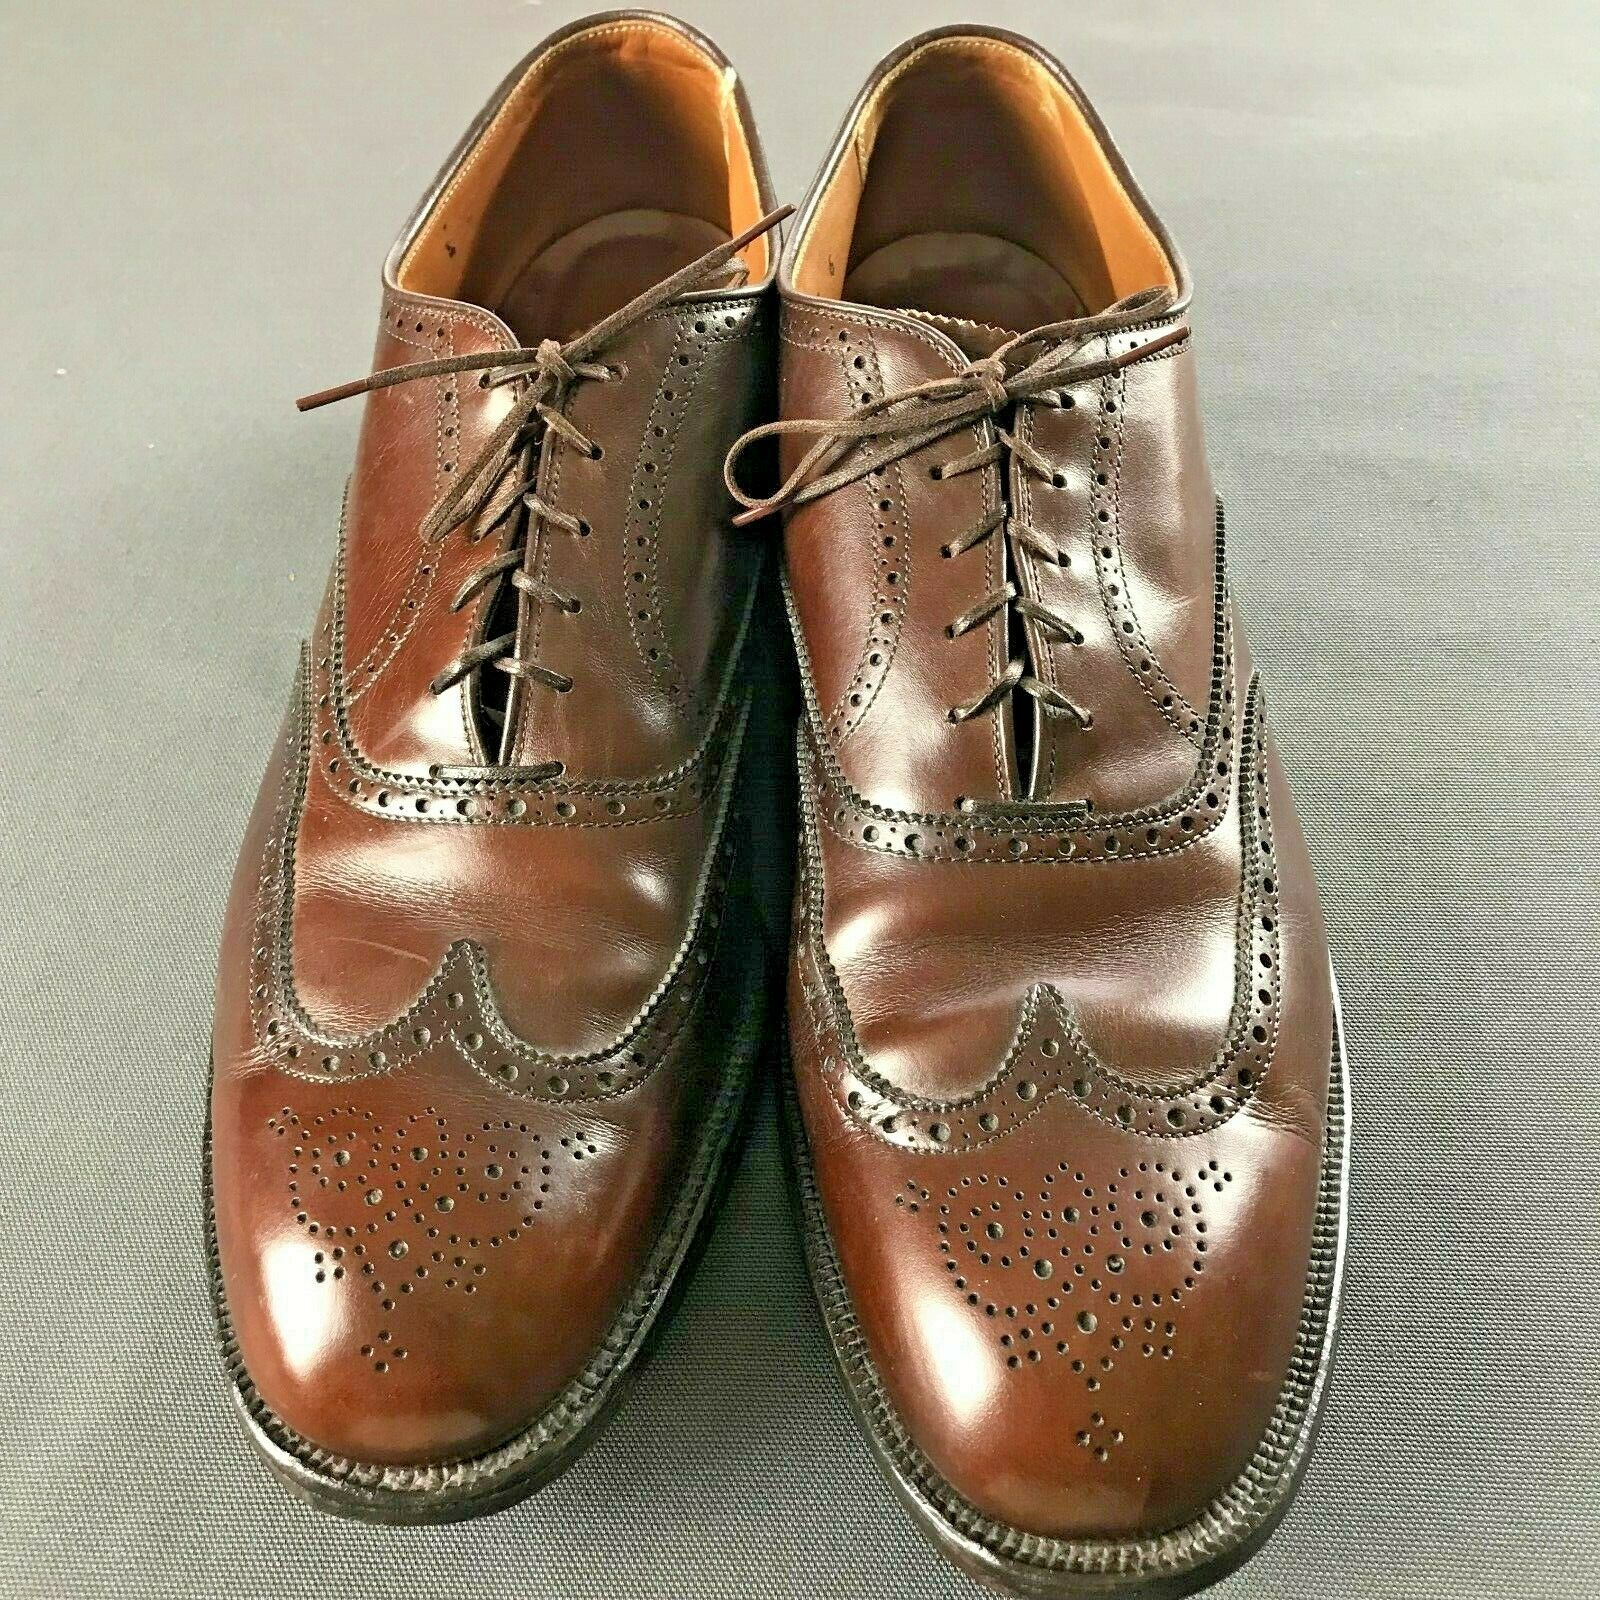 MSRP ALDEN BALMORAL BARELY WORN WINGTIP SHOES COLOR 8 SIZE 13 B